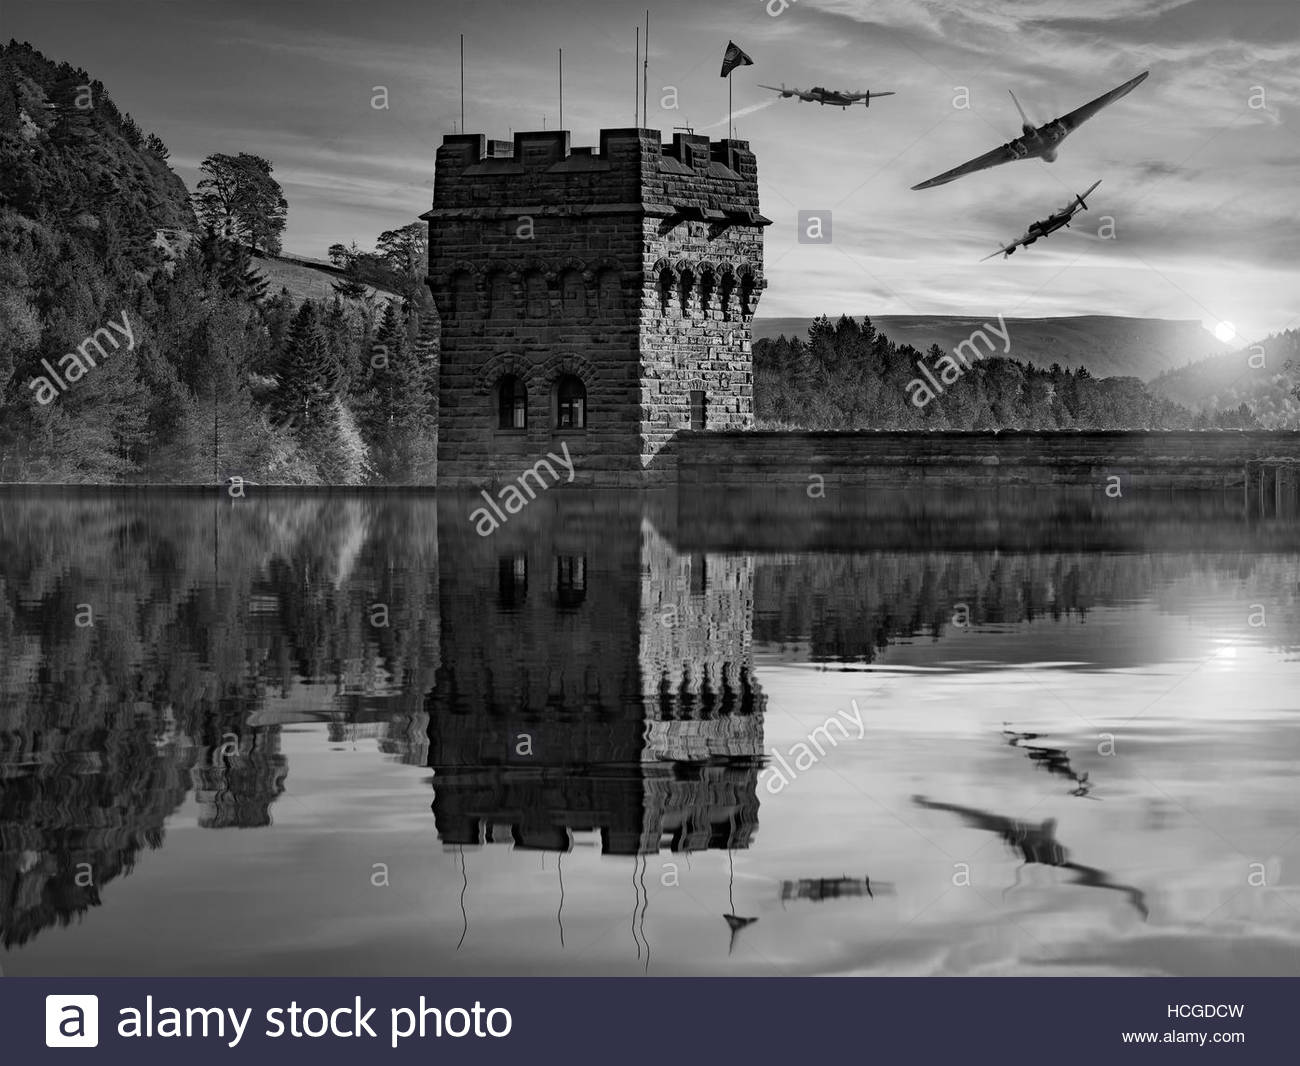 Lancaster and Vulcan Bombers over the Derwent Dam - Stock Image